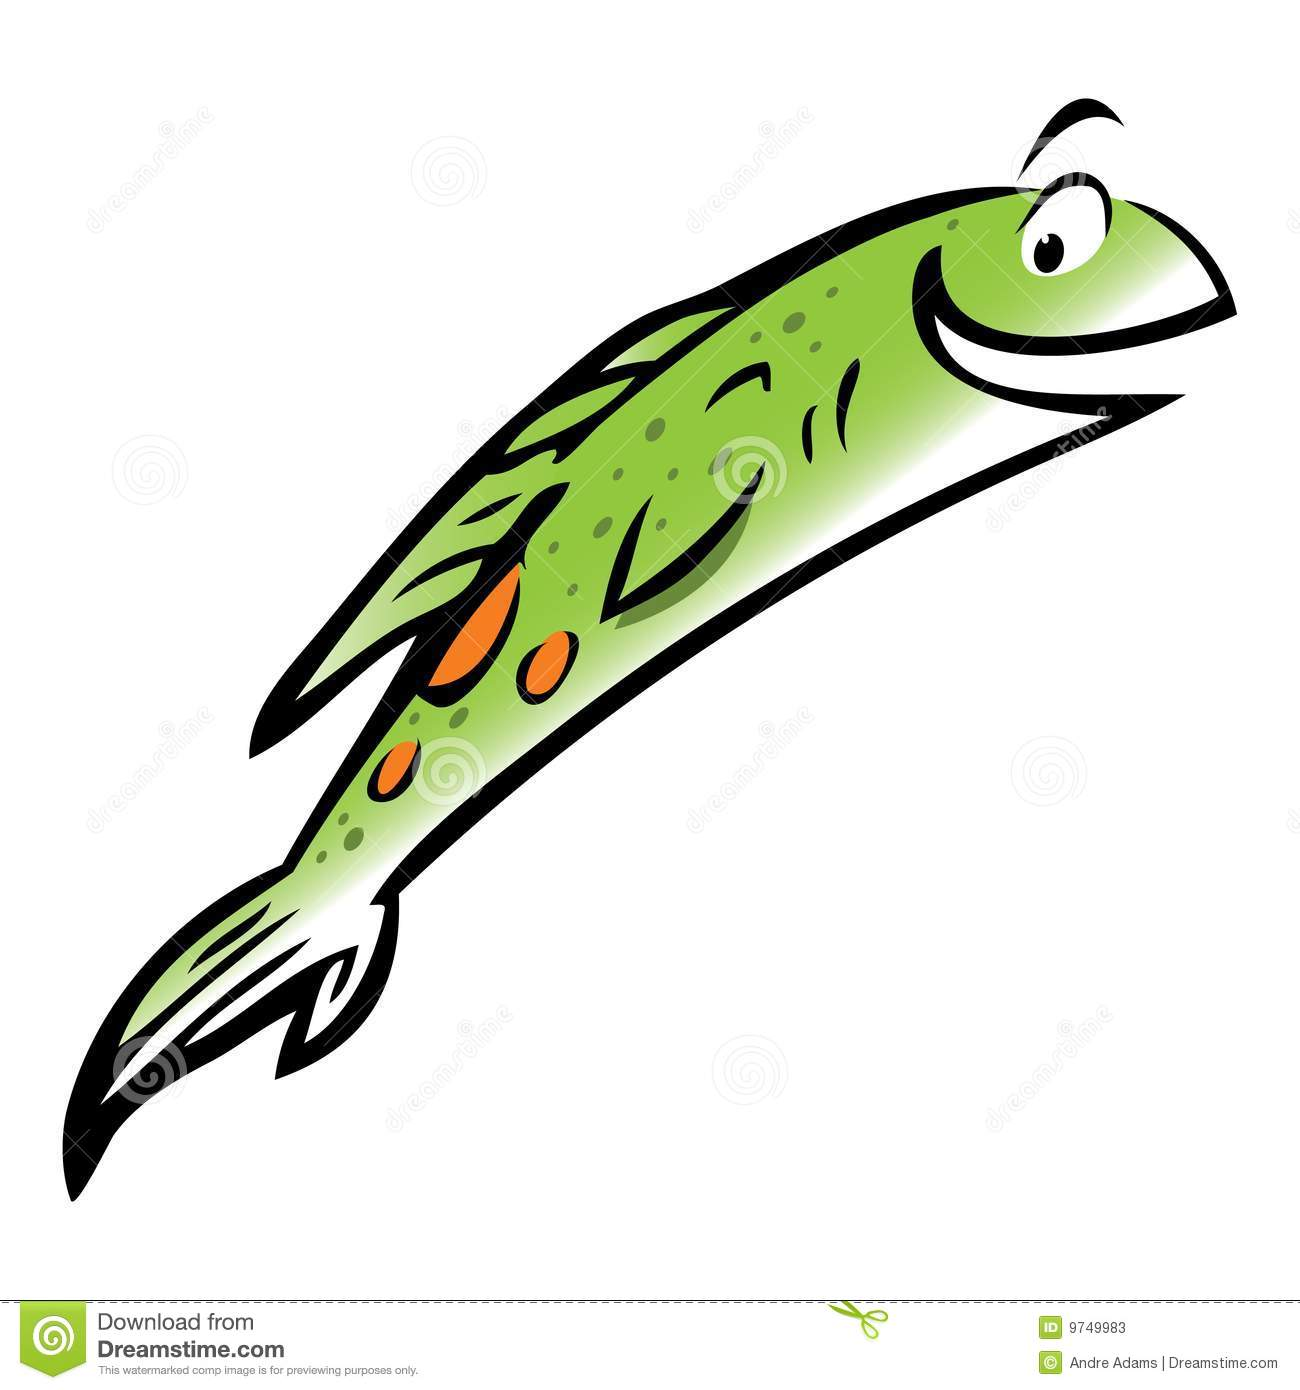 Cartoon fish jumping out of water clipart - photo#9